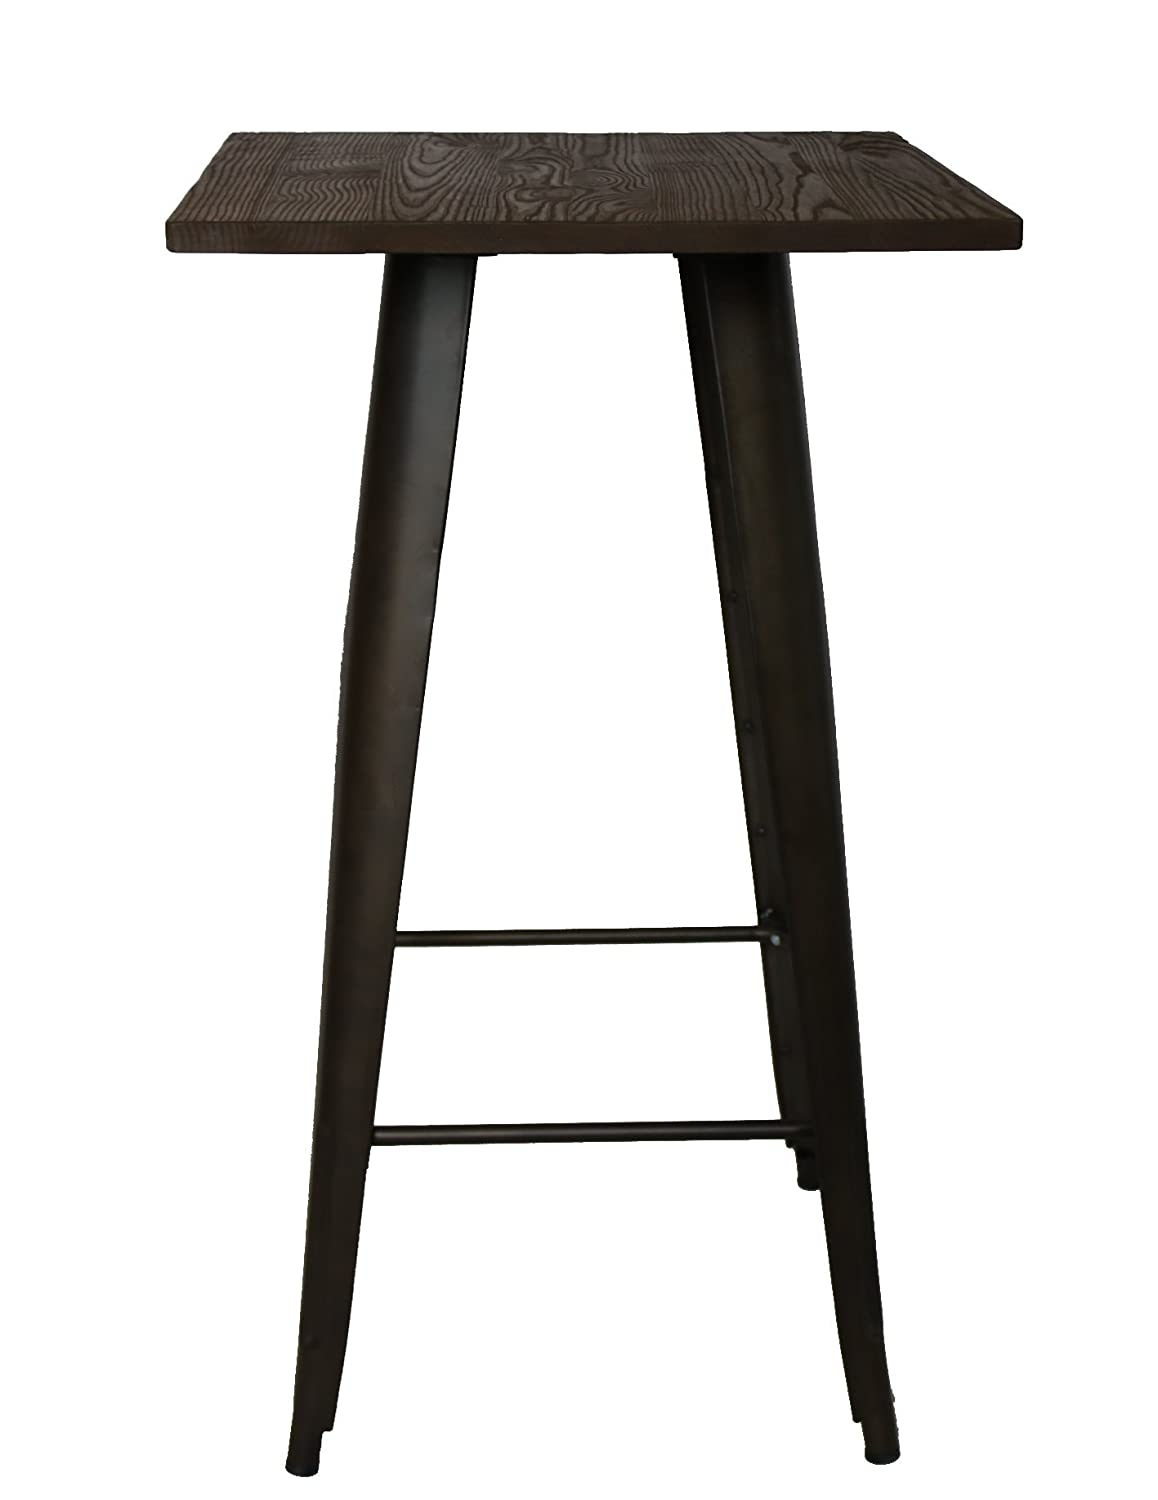 Pleasing Btexpert Industrial Antique Copper Bronze Distressed Rustic Steel Metal Dining Table With Wood Top Restaurant Squirreltailoven Fun Painted Chair Ideas Images Squirreltailovenorg